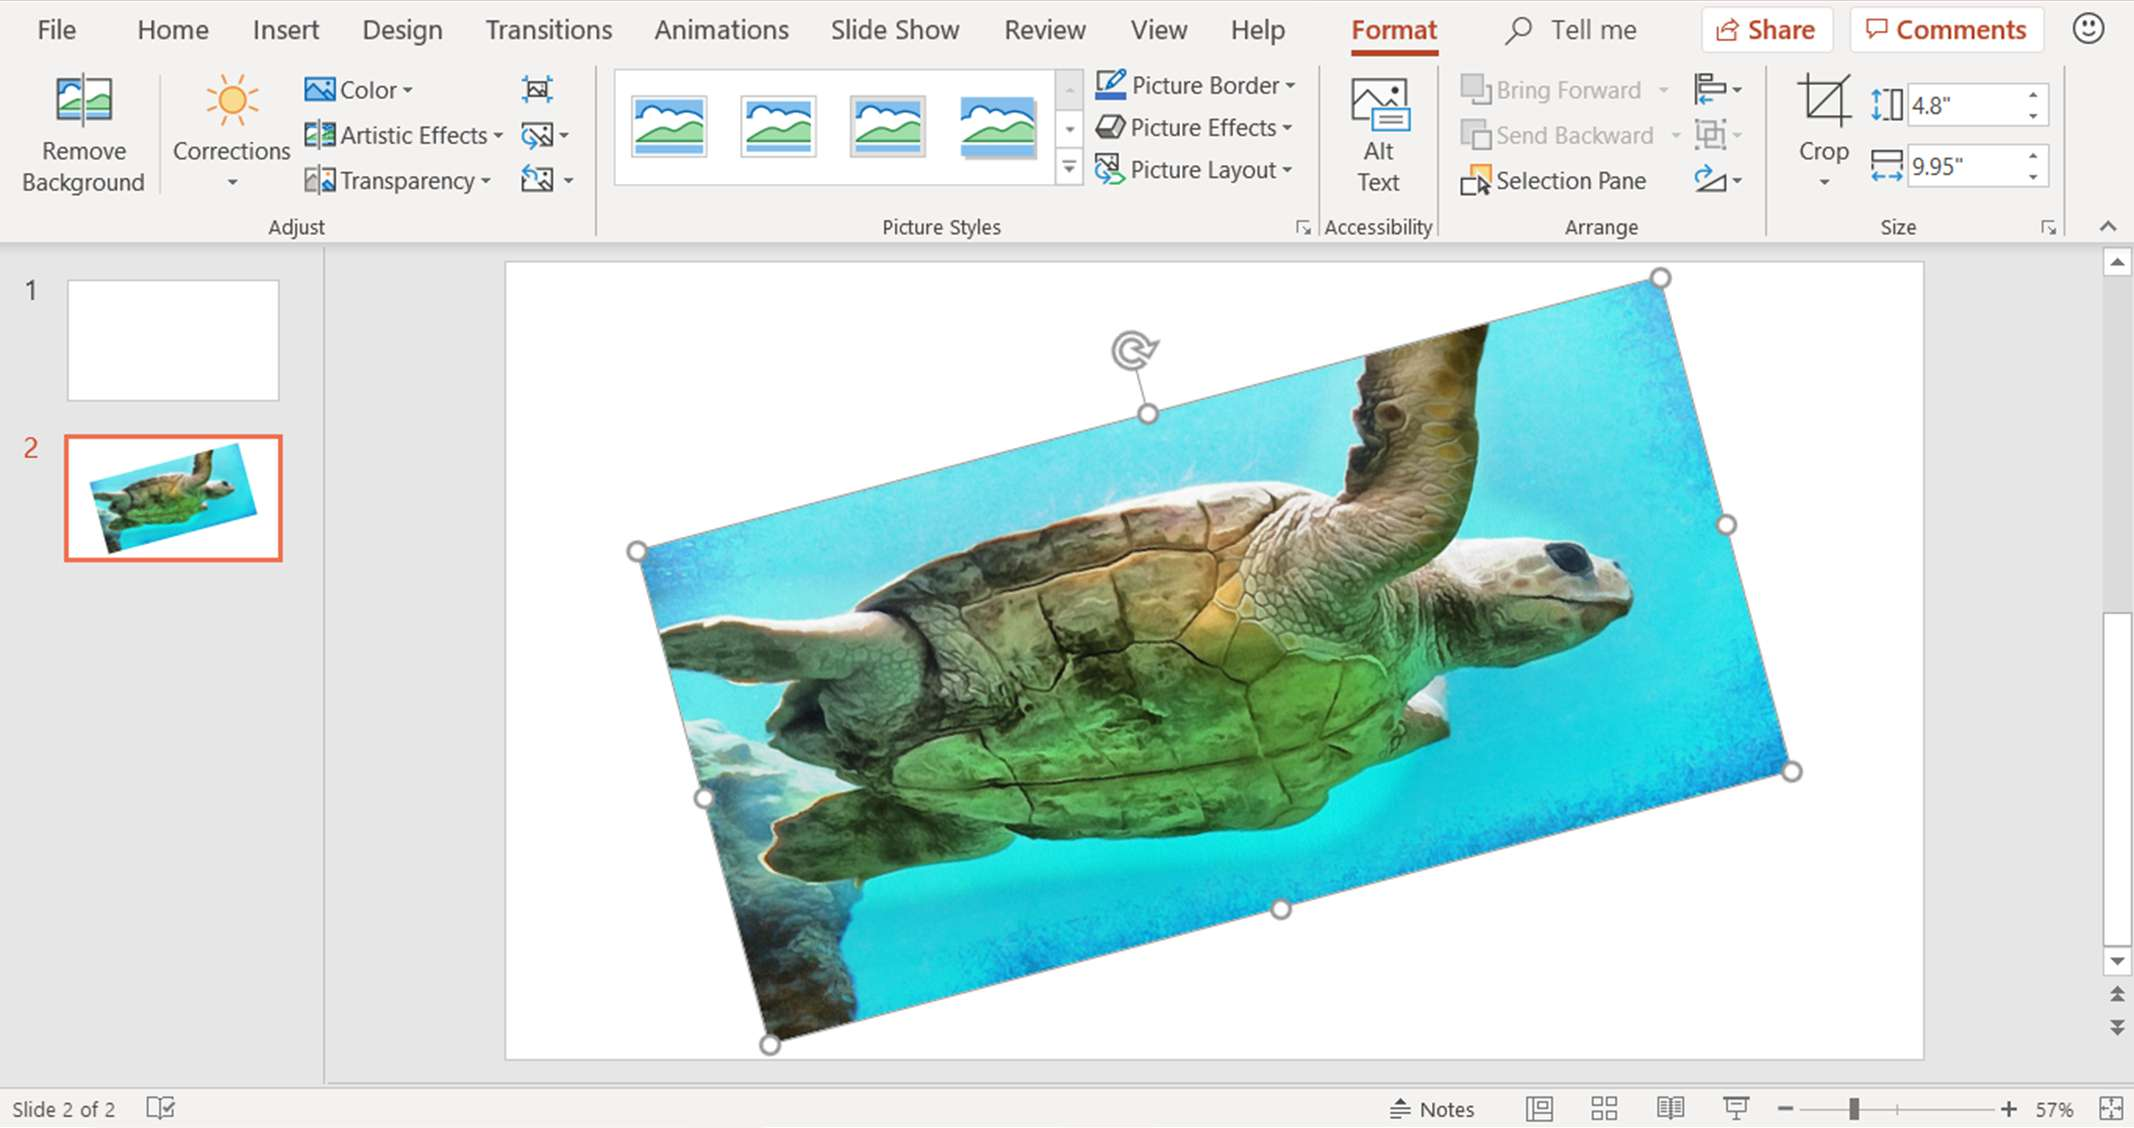 A screenshot showing how to rotate a picture by 15 degree increments in PowerPoint